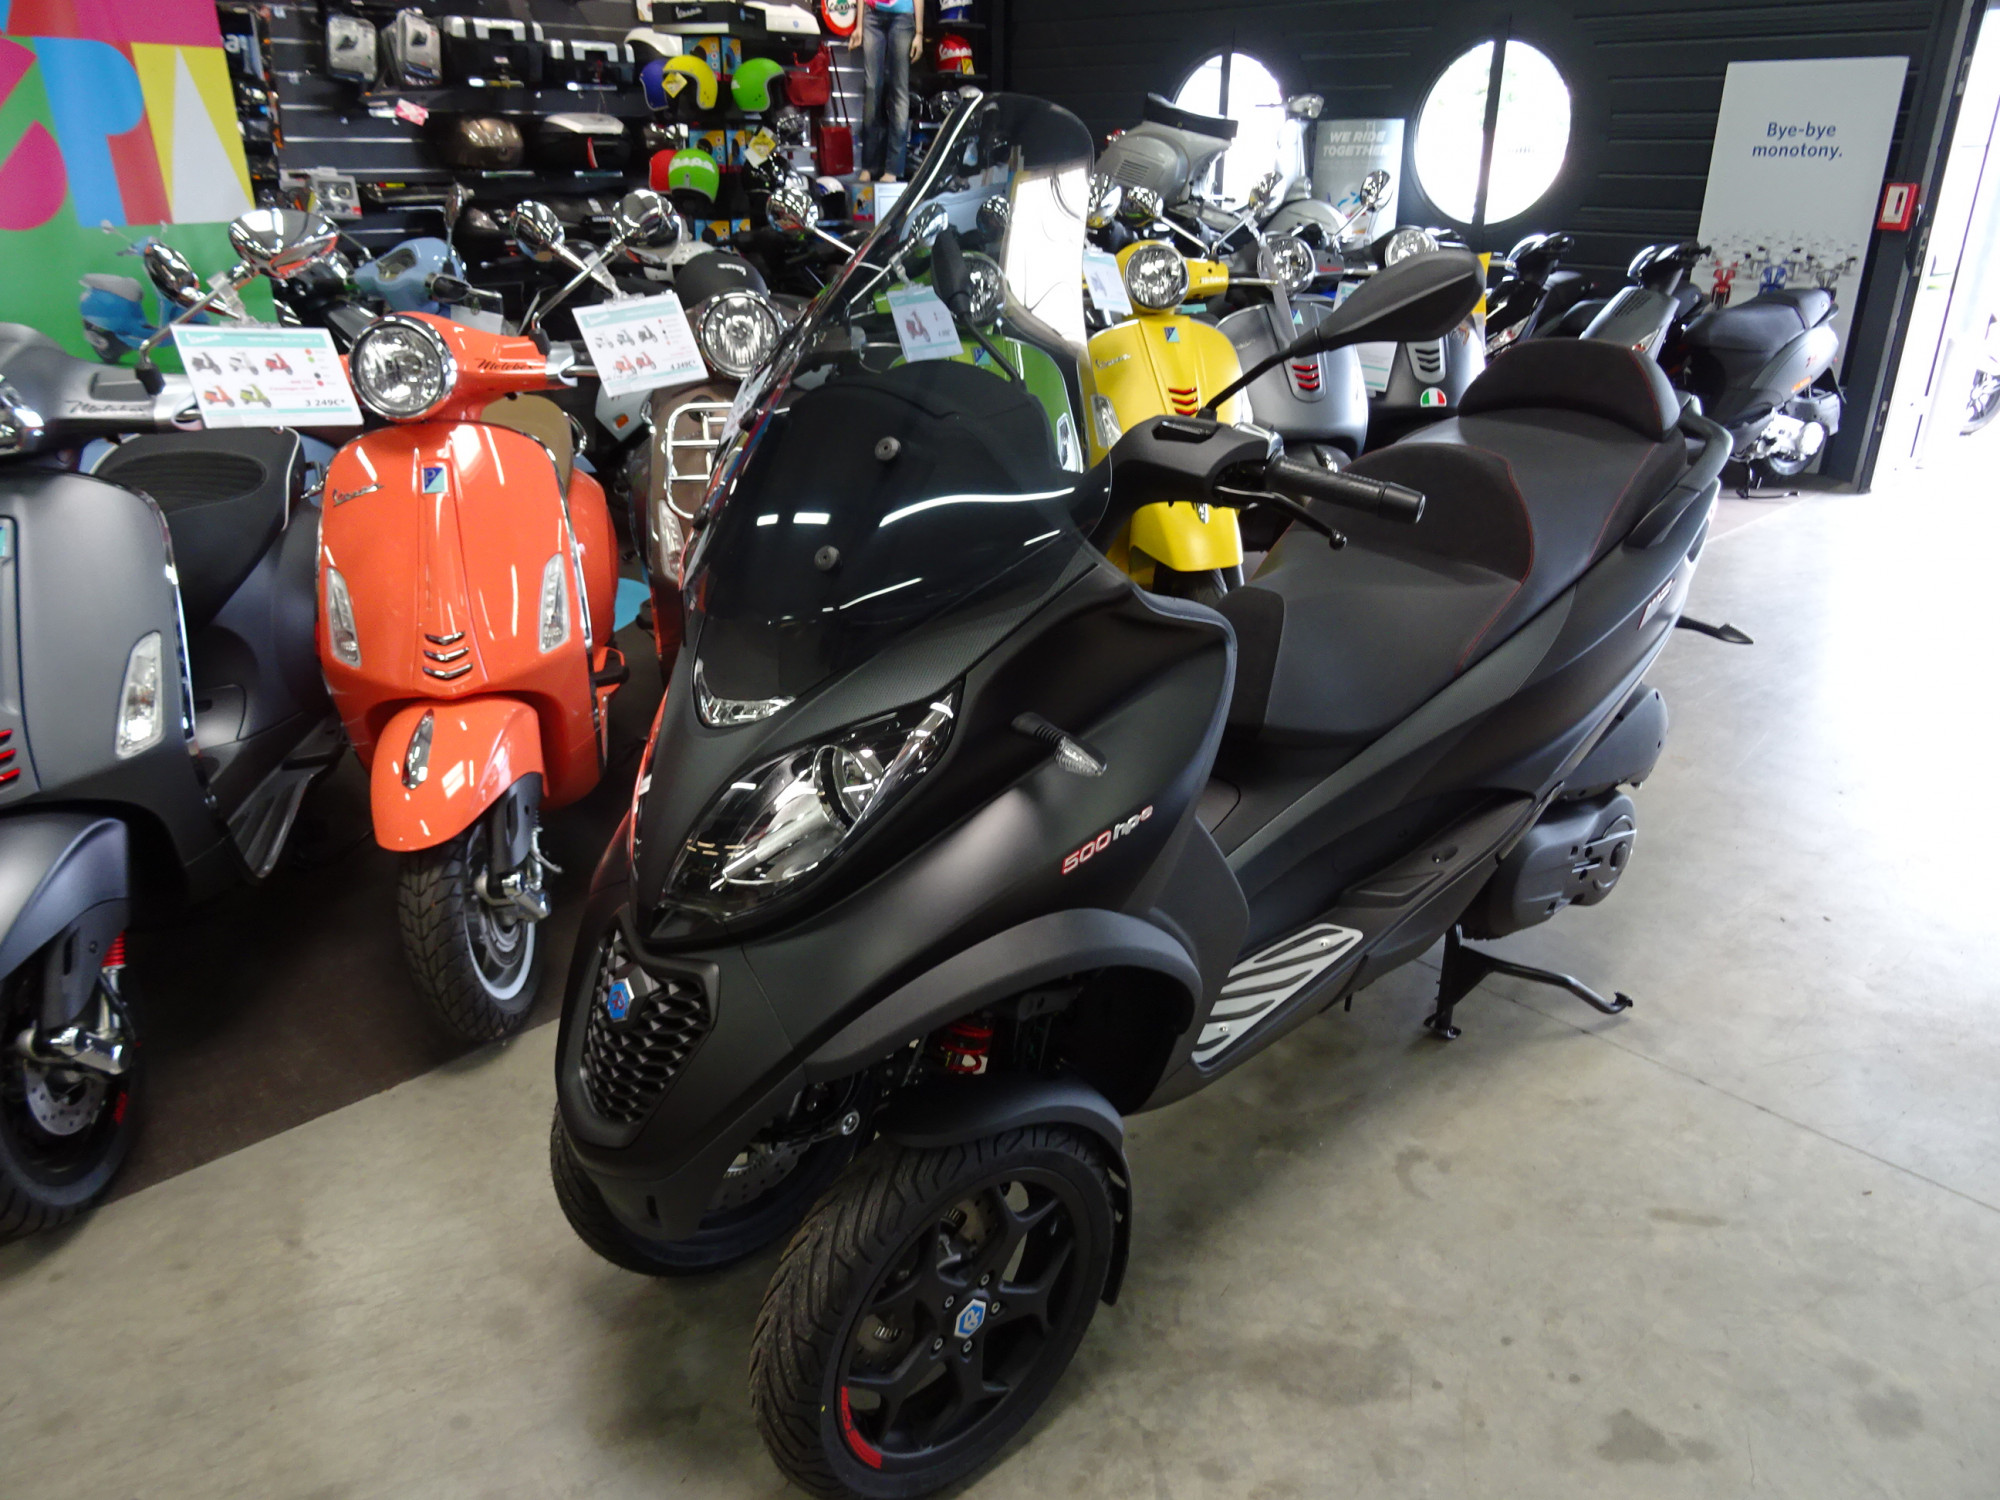 Scooter PIAGGIO MP3 500 LT hpe ABS/ASR occasion